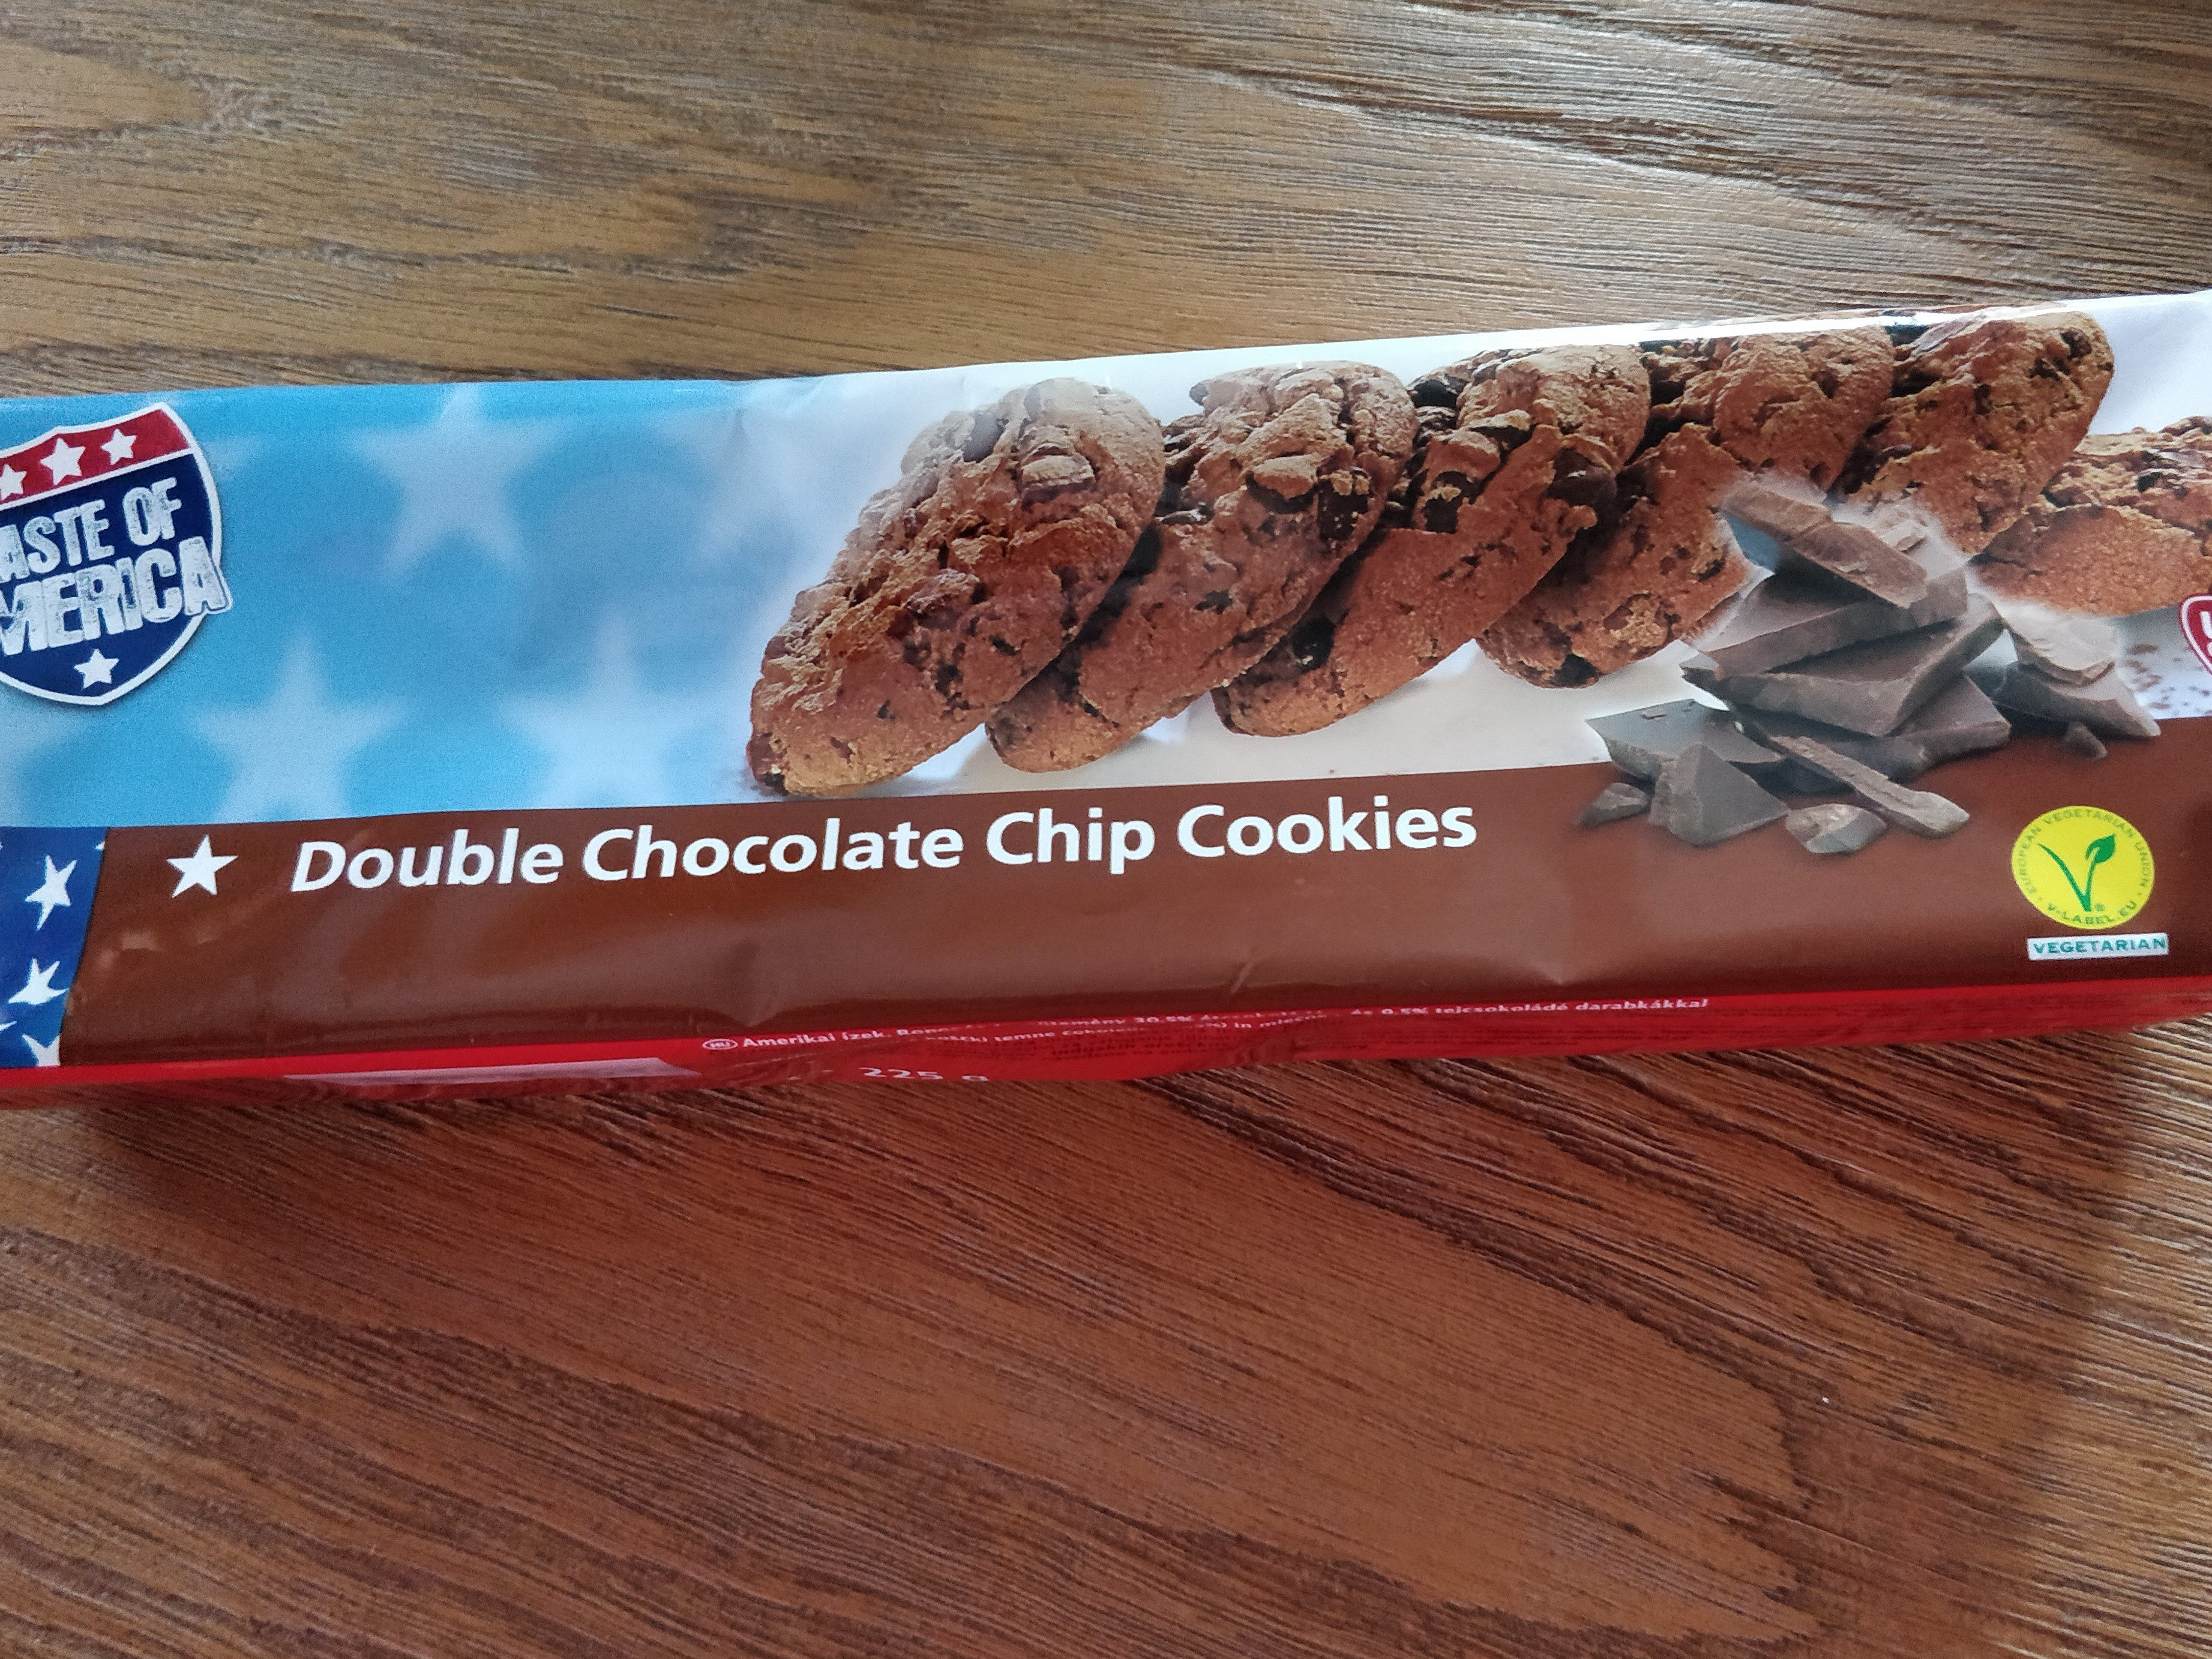 Double chocolate chip cookies - Product - fr